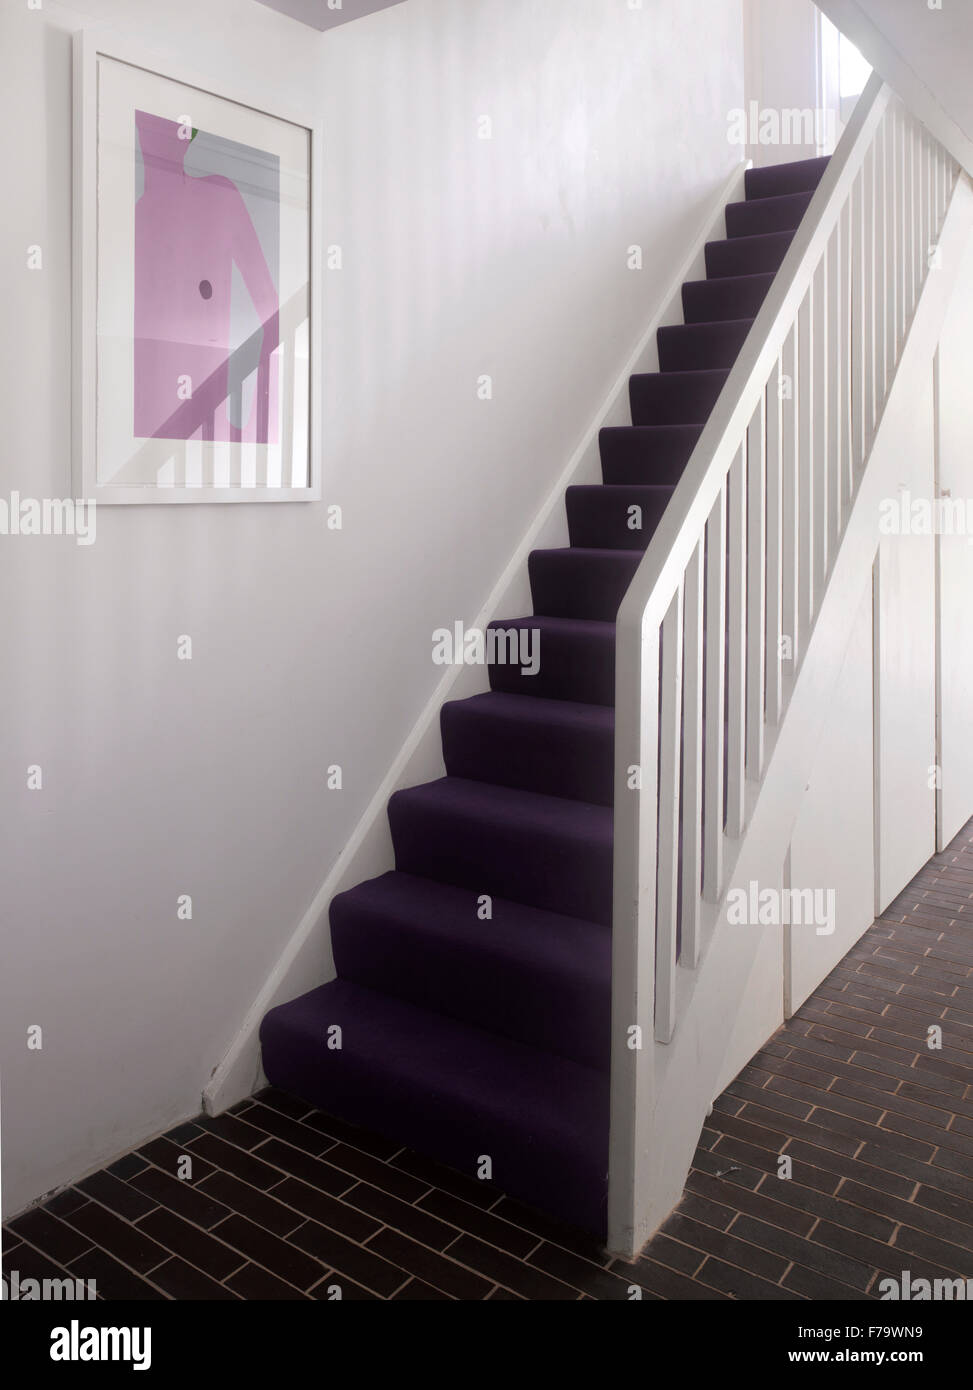 Staircase  in refurbished 1960s social housing, Vauxhall, London, England, UK - Stock Image